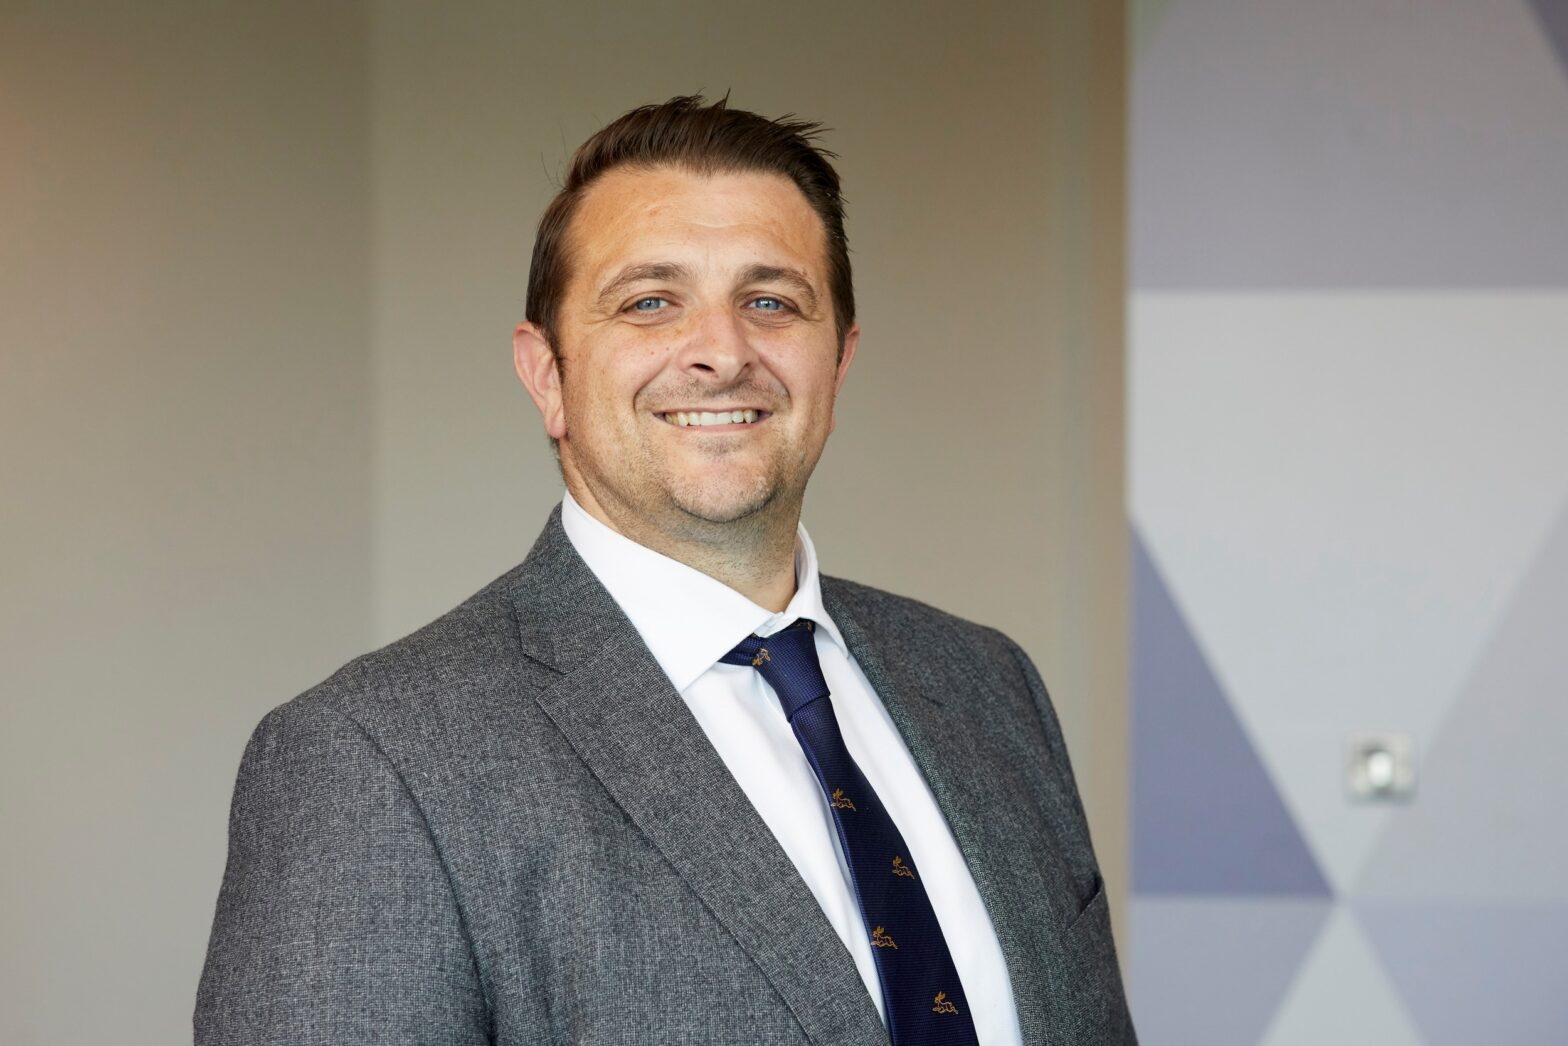 Roma Finance appoints Nick Jones as Commercial Director